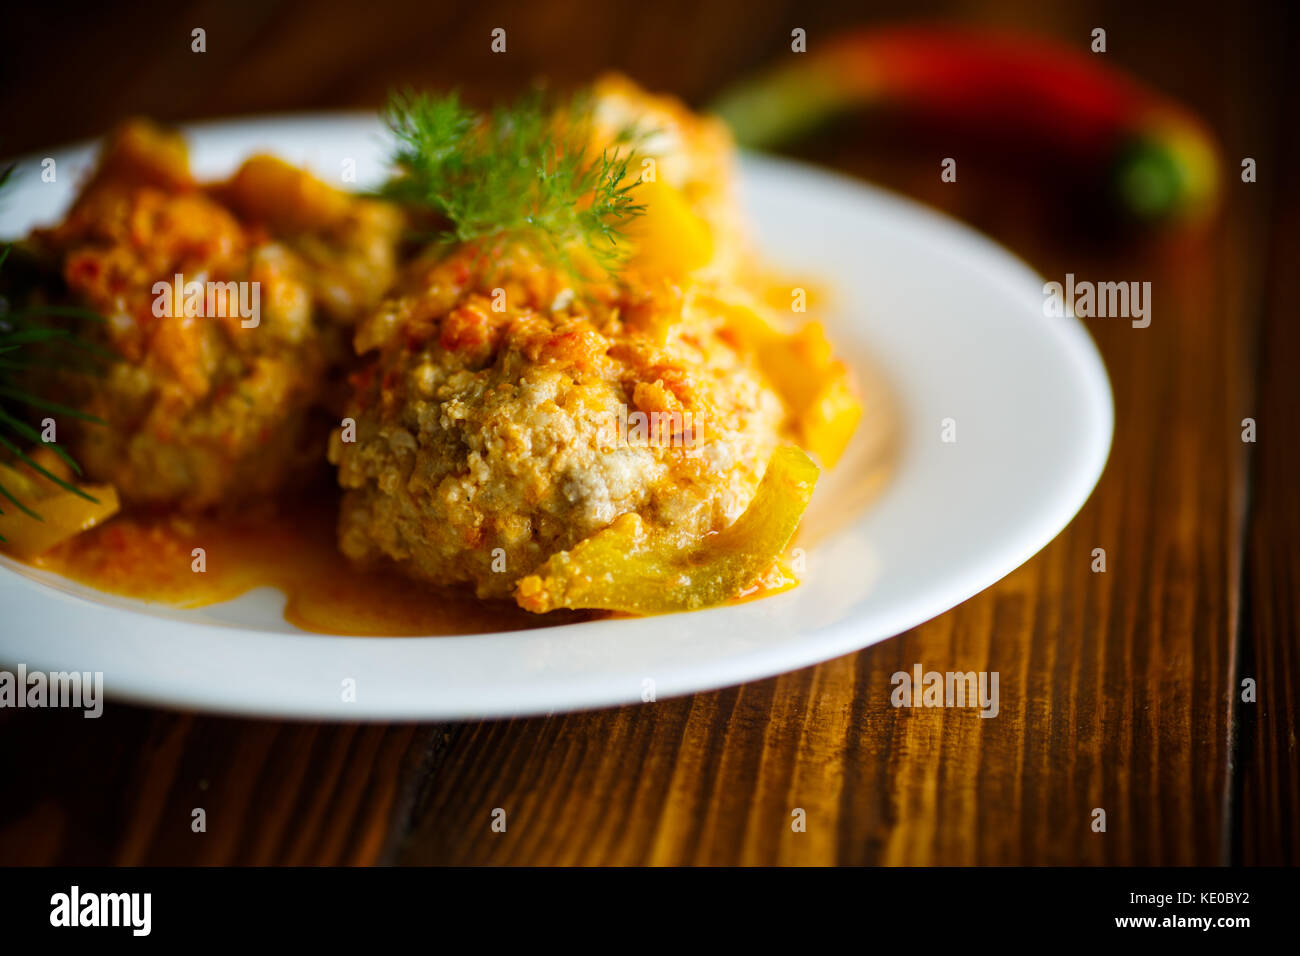 meatballs in a plate - Stock Image